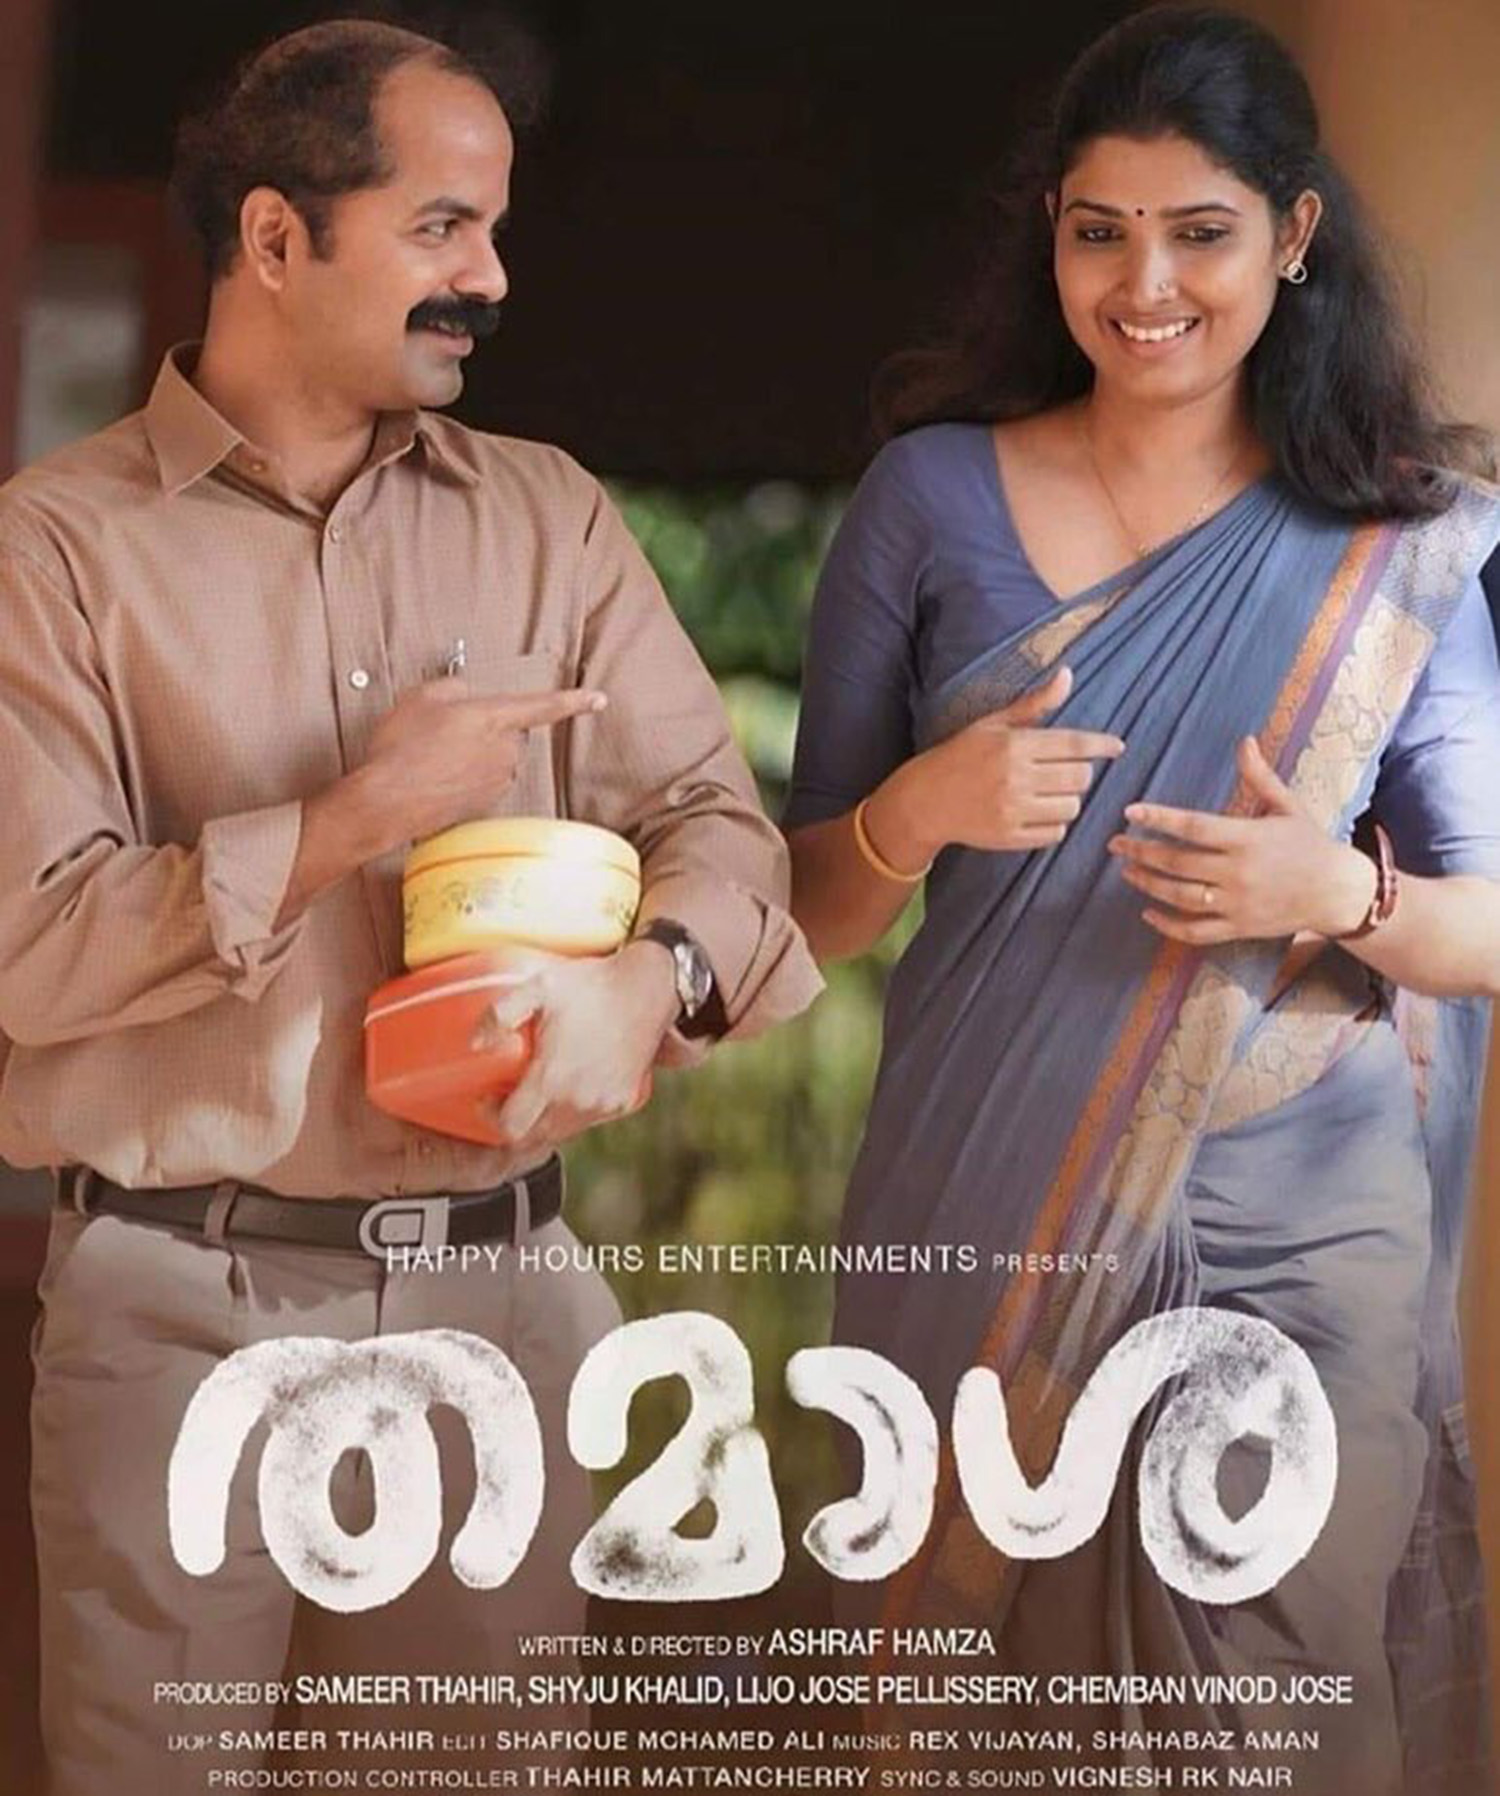 Thamaasha review,Thamaasha malayalam movie review,Thamaasha movie review,vinay forrt,vinay forrt new movie,vinay forrt Thamaasha review,Thamaasha kerala box office report,Thamaasha hit or flop,Thamaasha poster,Thamaasha movie stills